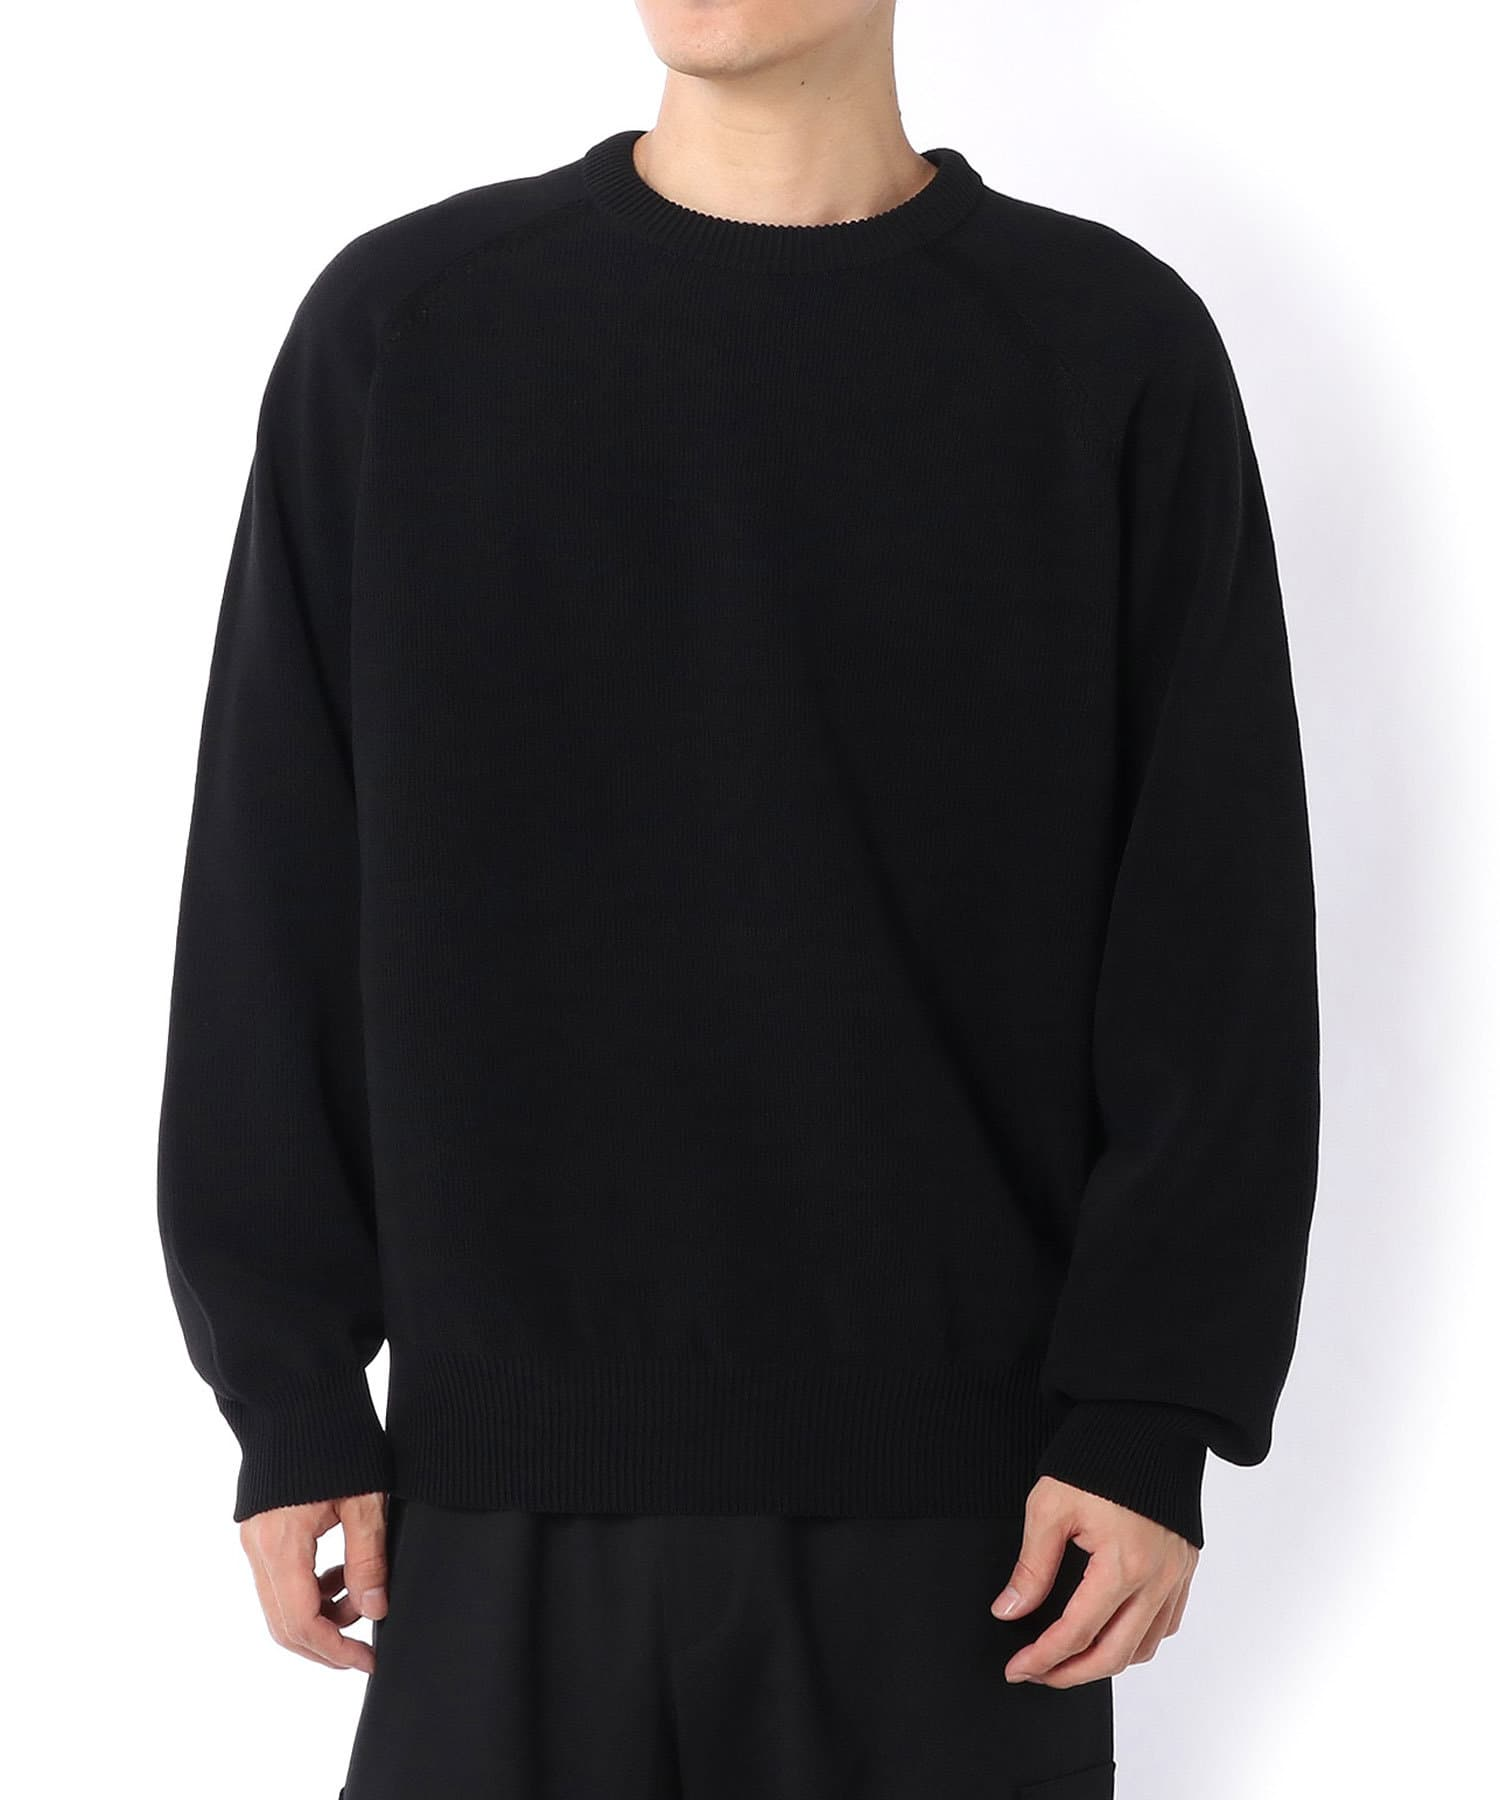 Lui's(ルイス) 【Y-3】 M CLASSIC KNIT CREW SWEATER